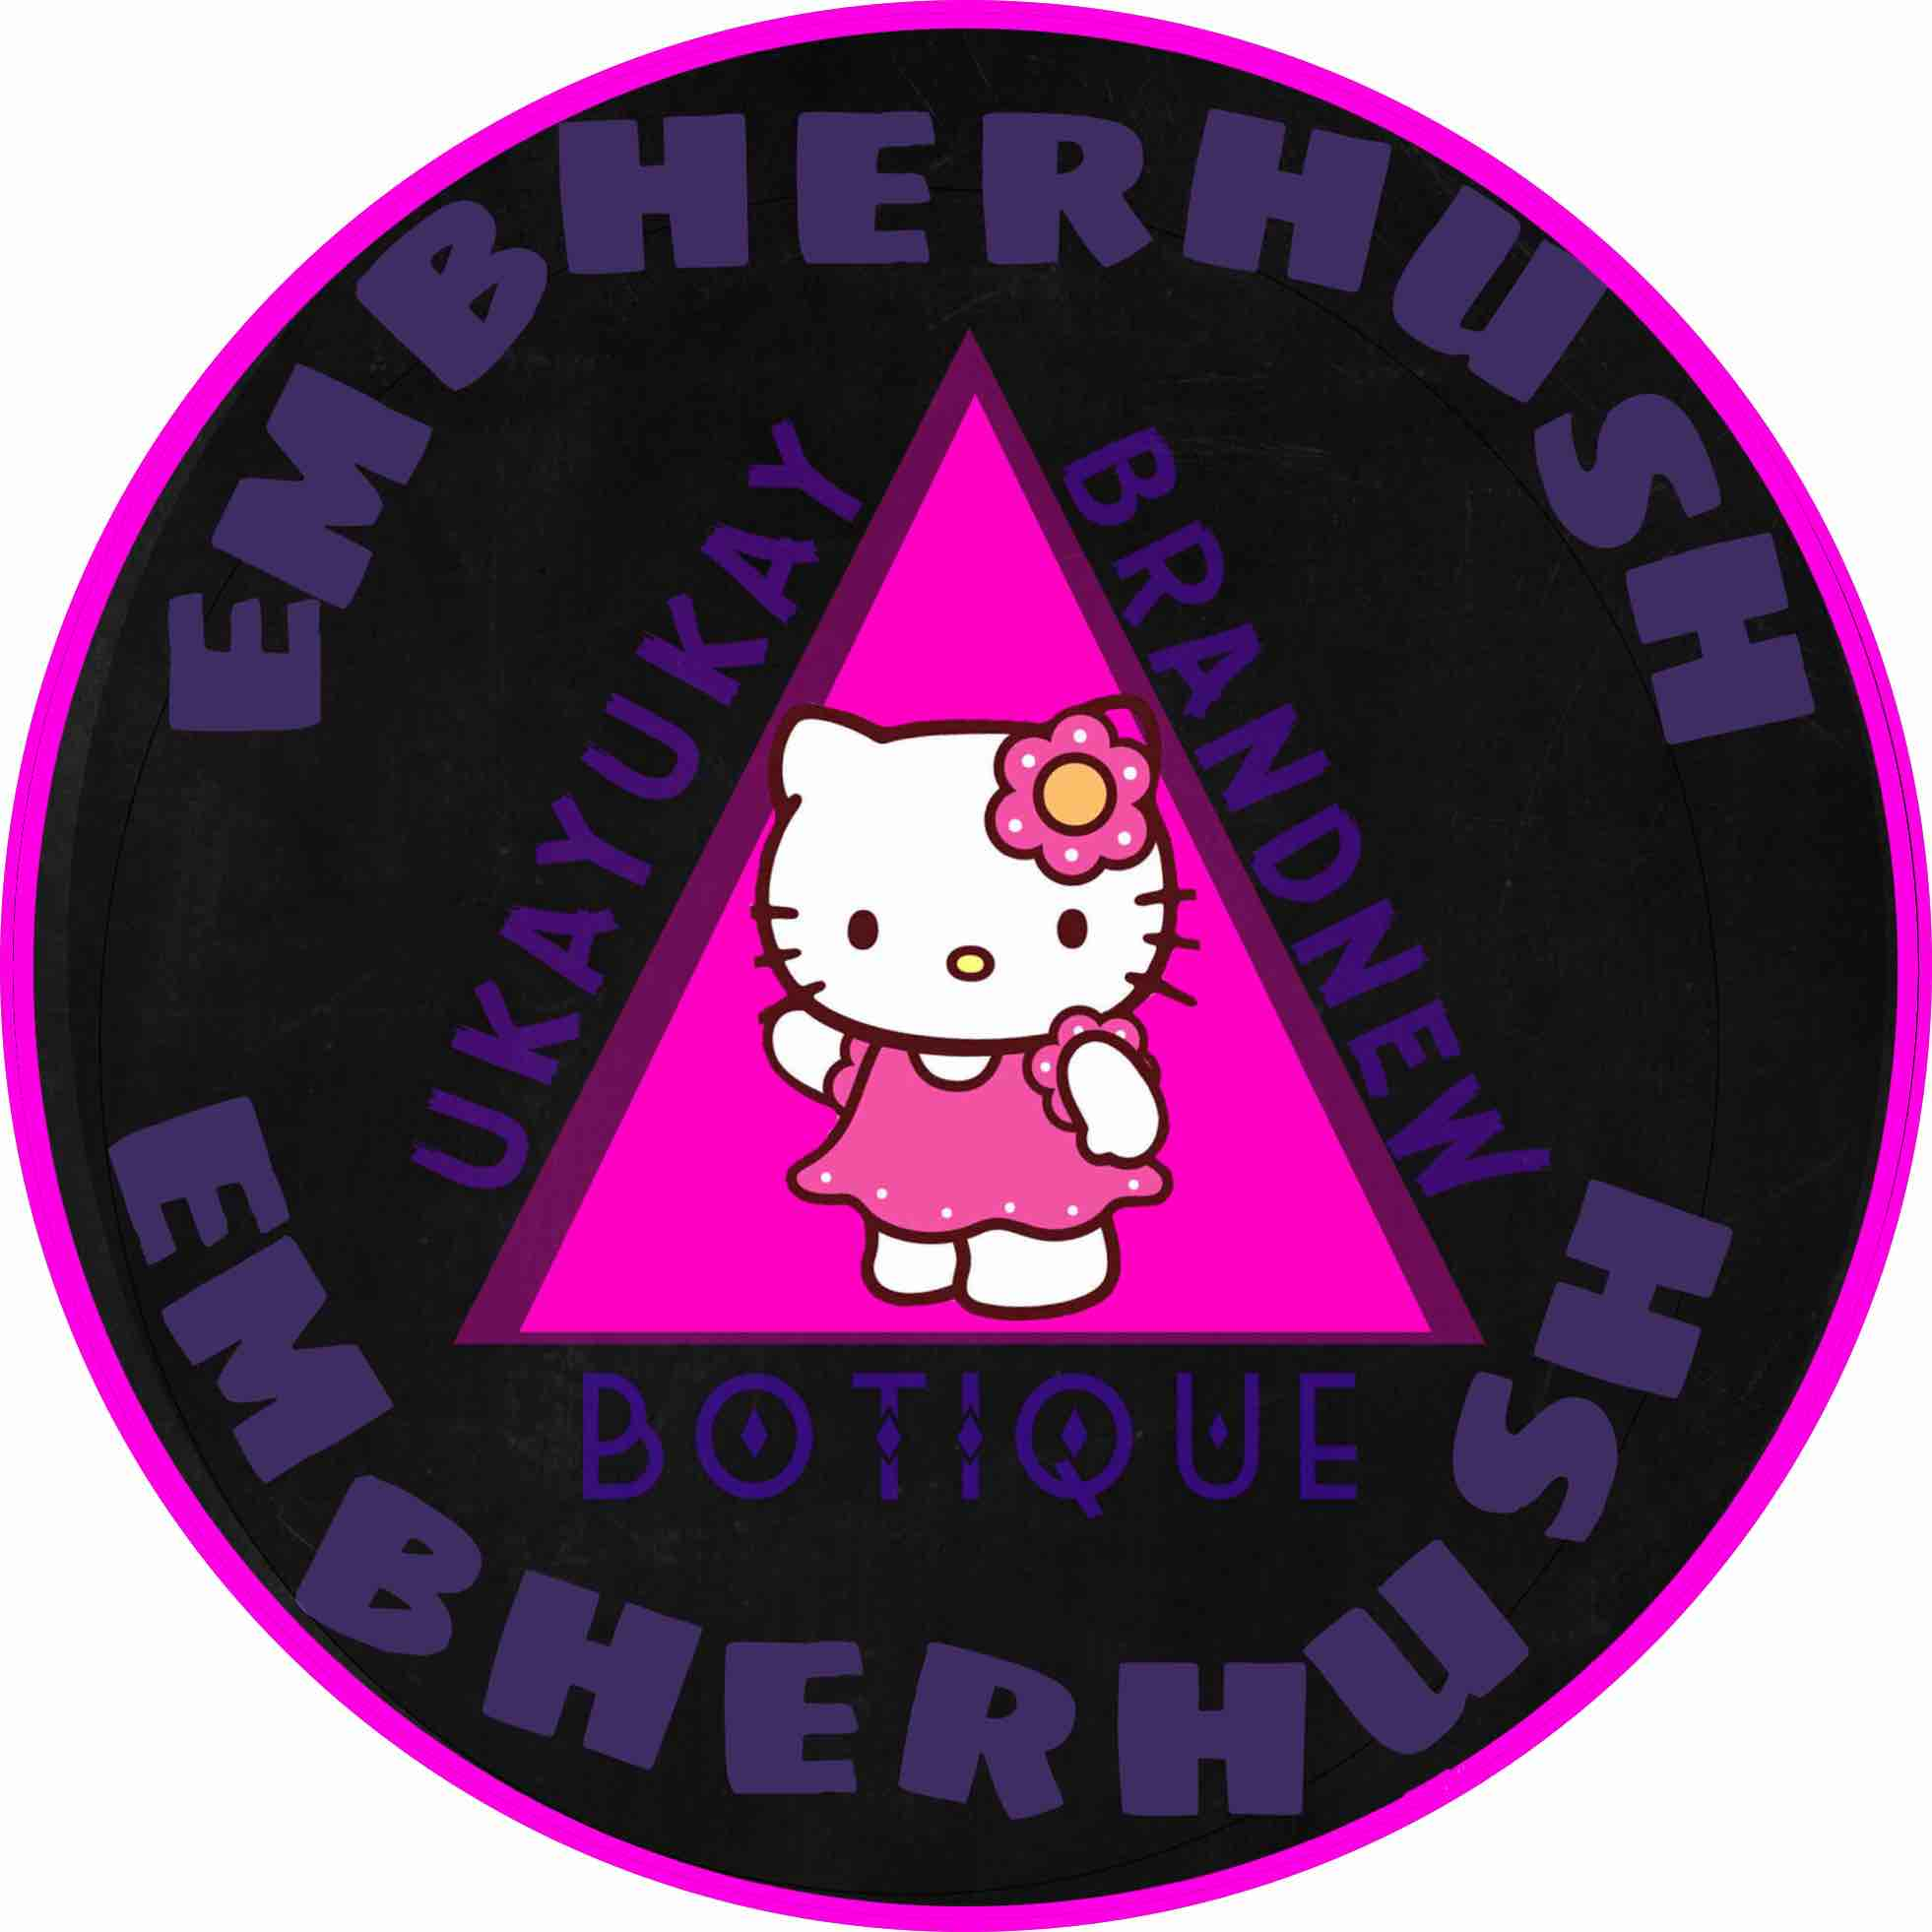 EmbherhushBotique